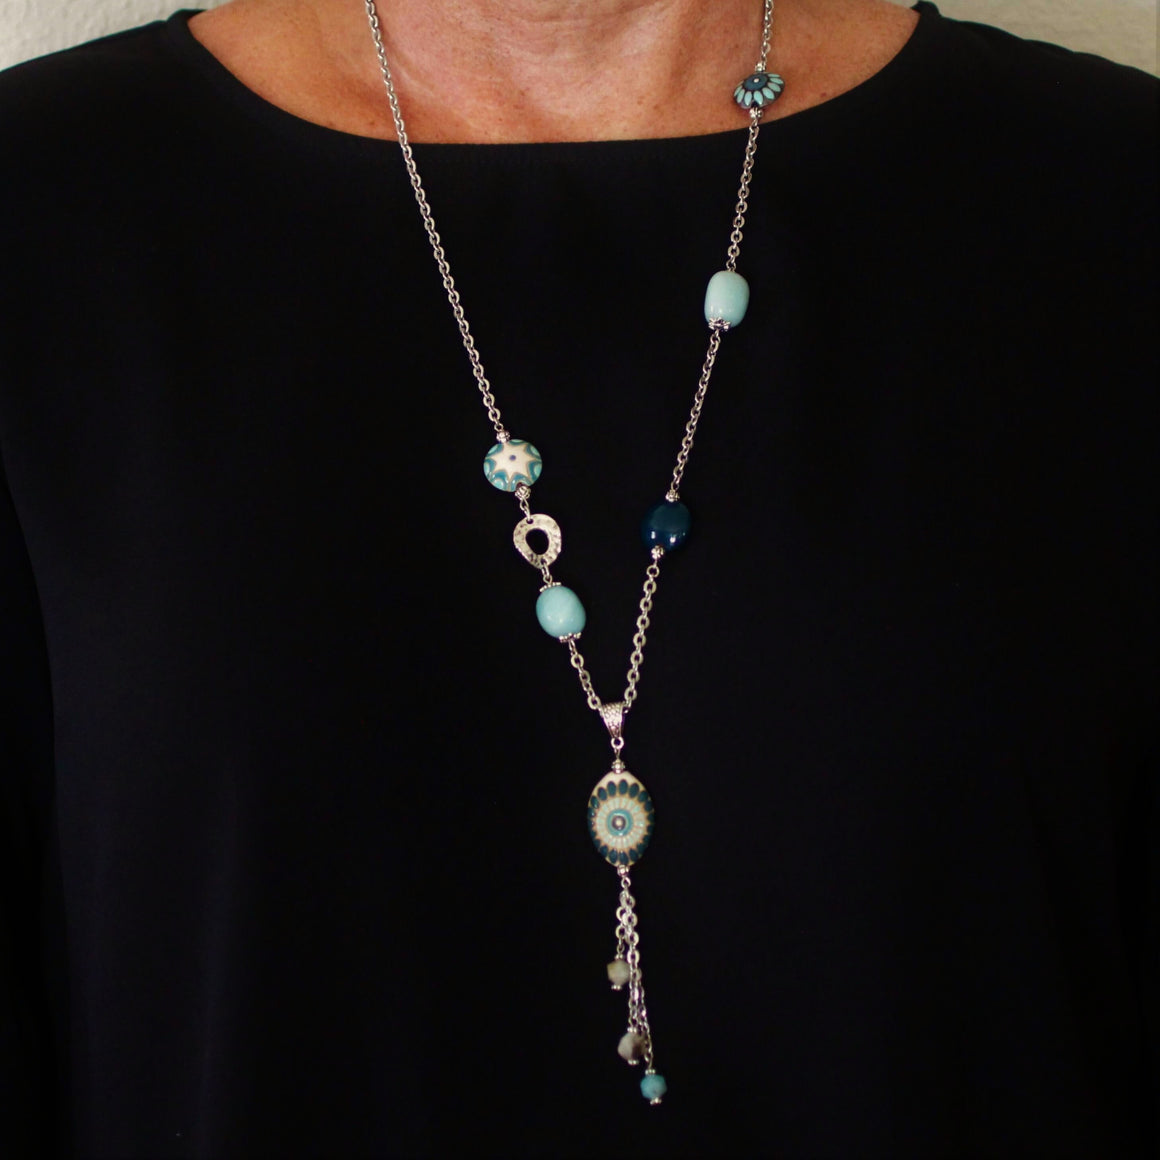 Teal Flower Golem Pendant Necklace with Golem Teal Flower beads and Amazonite Stones